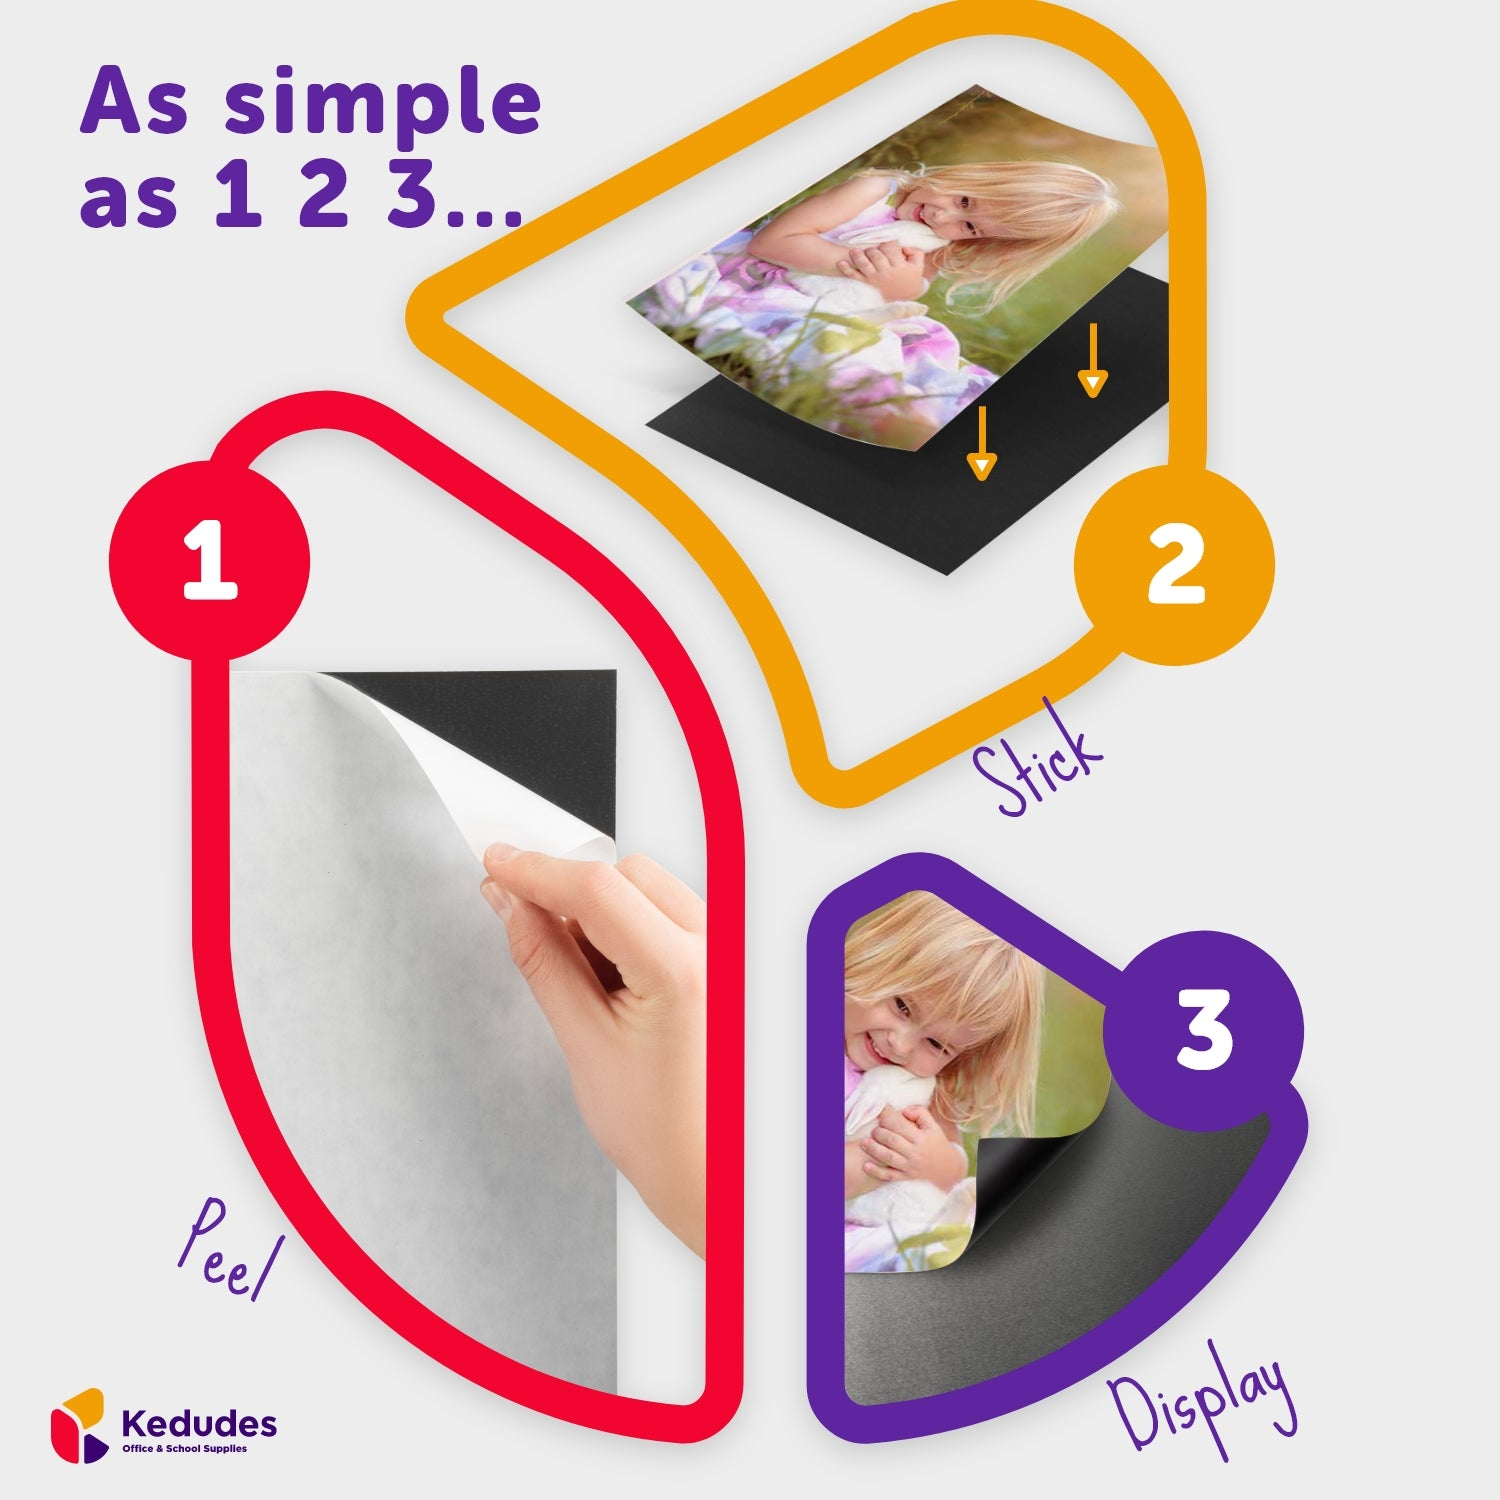 pack of 12 | 5x7 Flexible self Adhesive Magnetic Sheets - Peel and Stick, Cuts to Any Size. works Great for Pictures